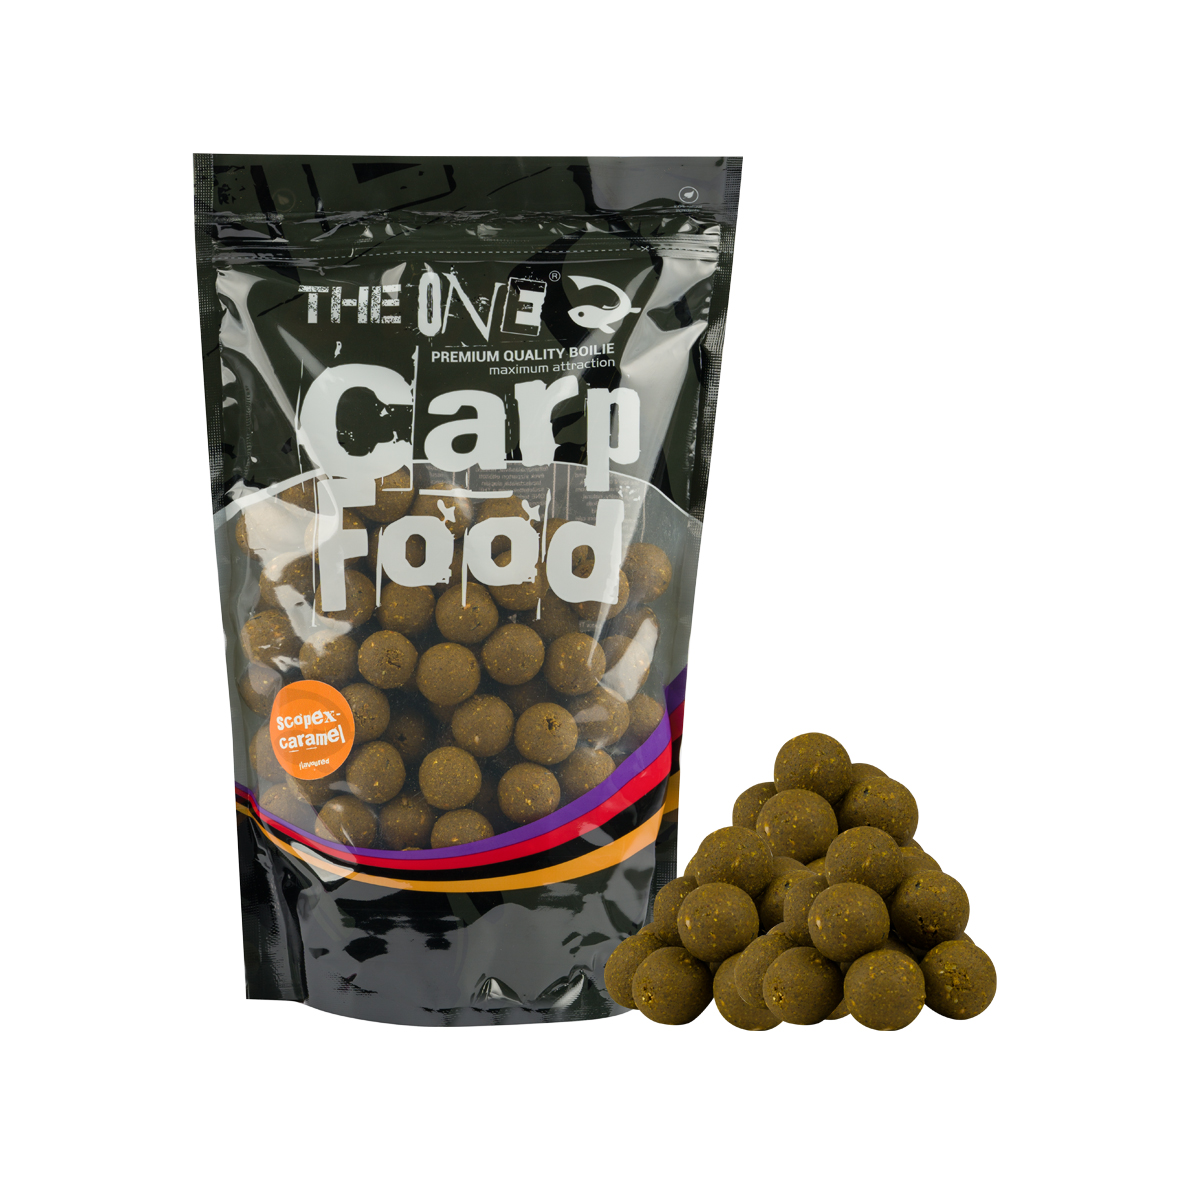 THE ONE FOOD GOLD SOLUBLE 22MM